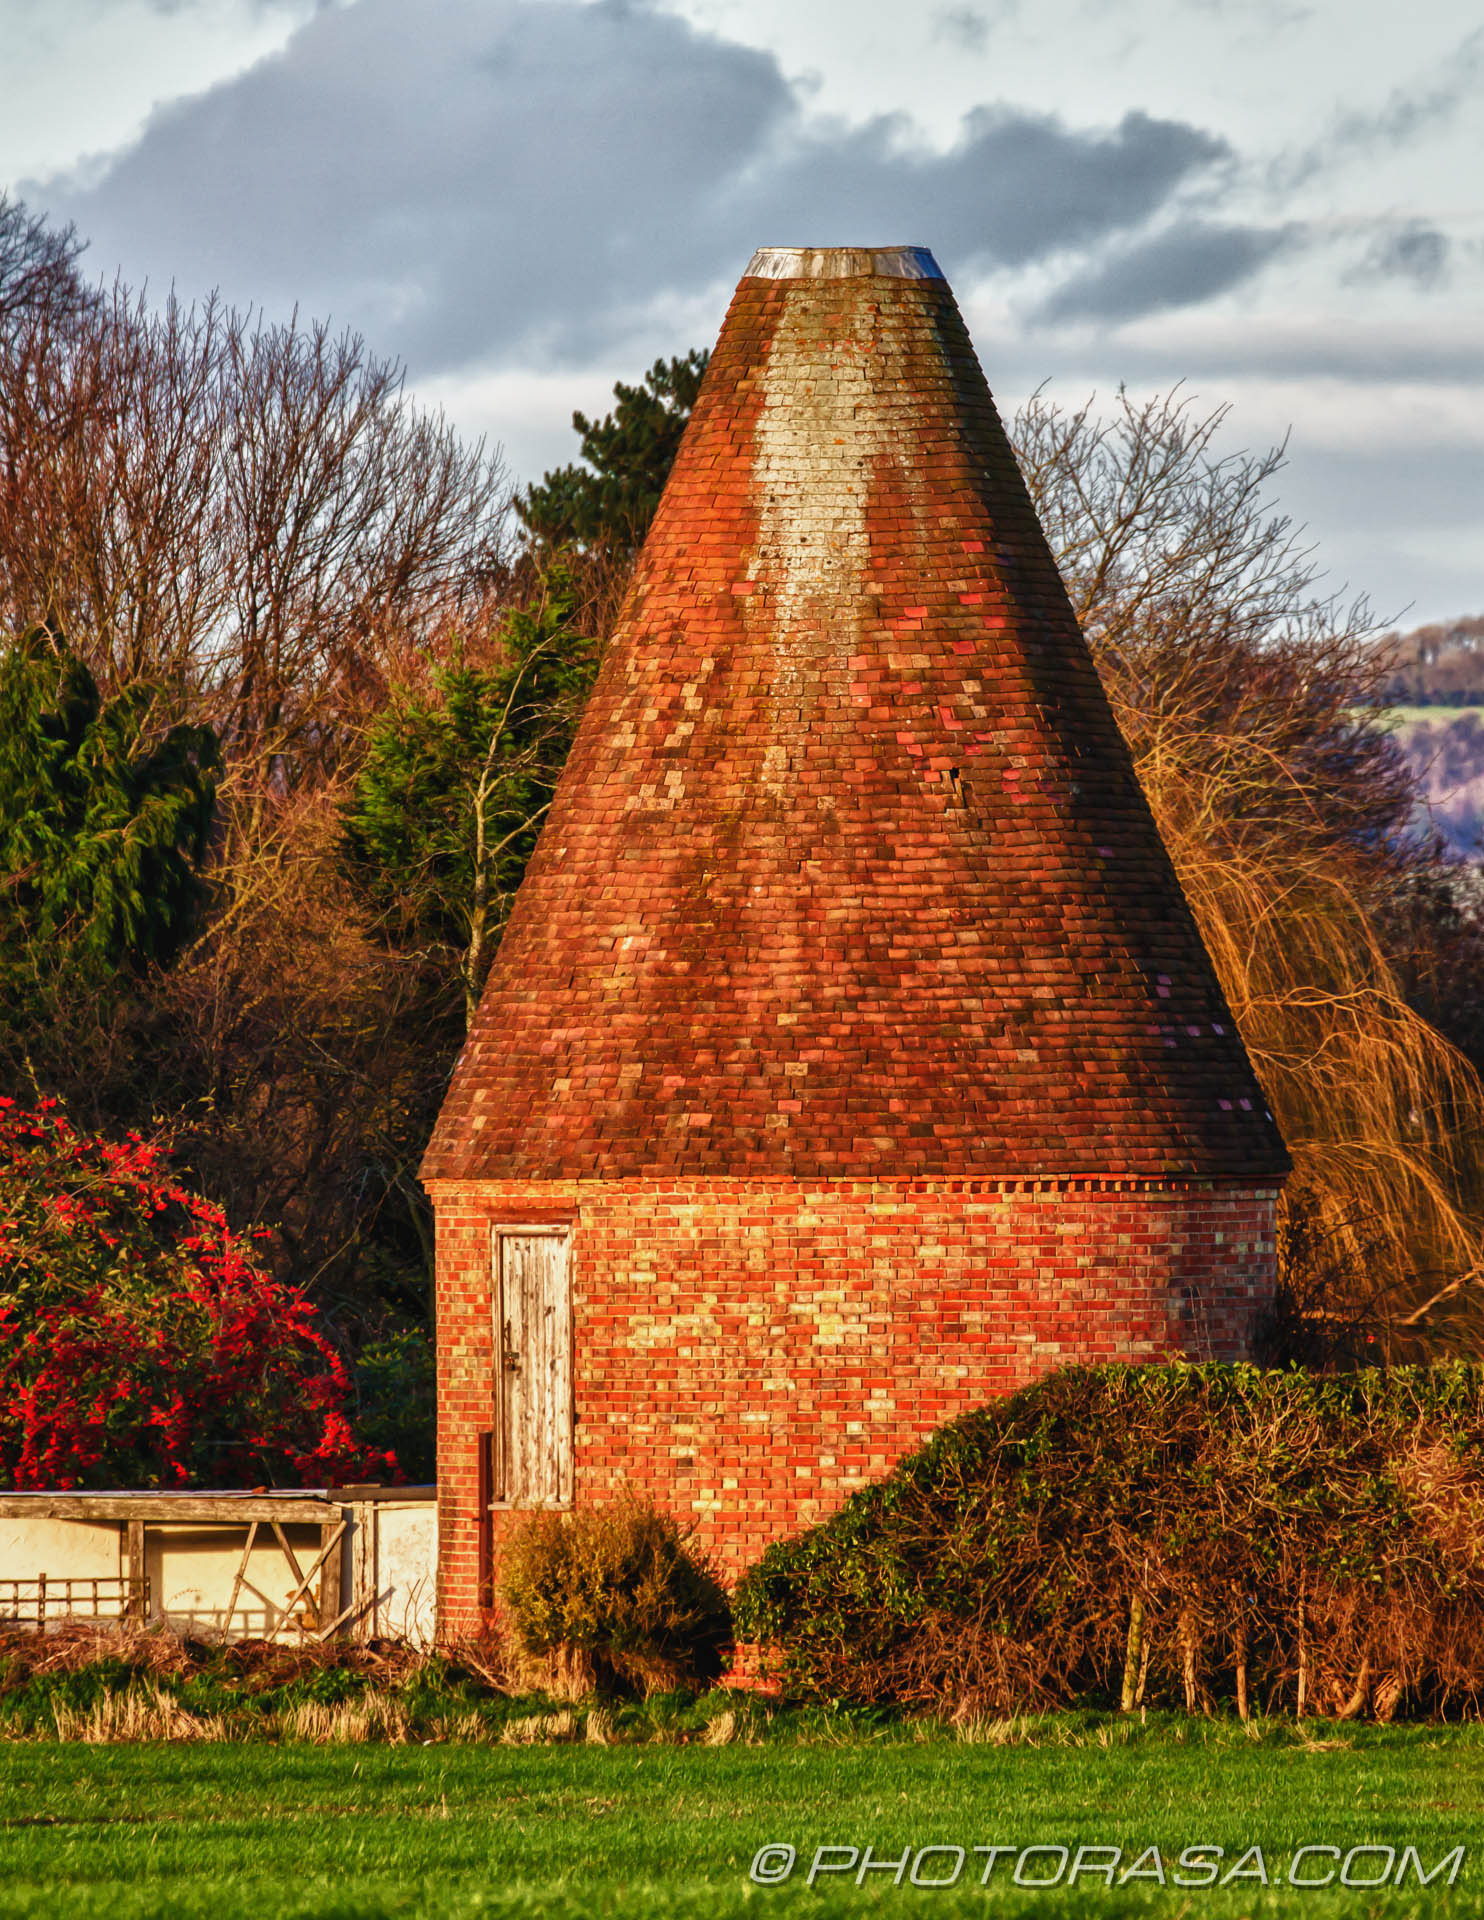 http://photorasa.com/countryside-otham/round-brick-kent-oast-with-missing-cowl/